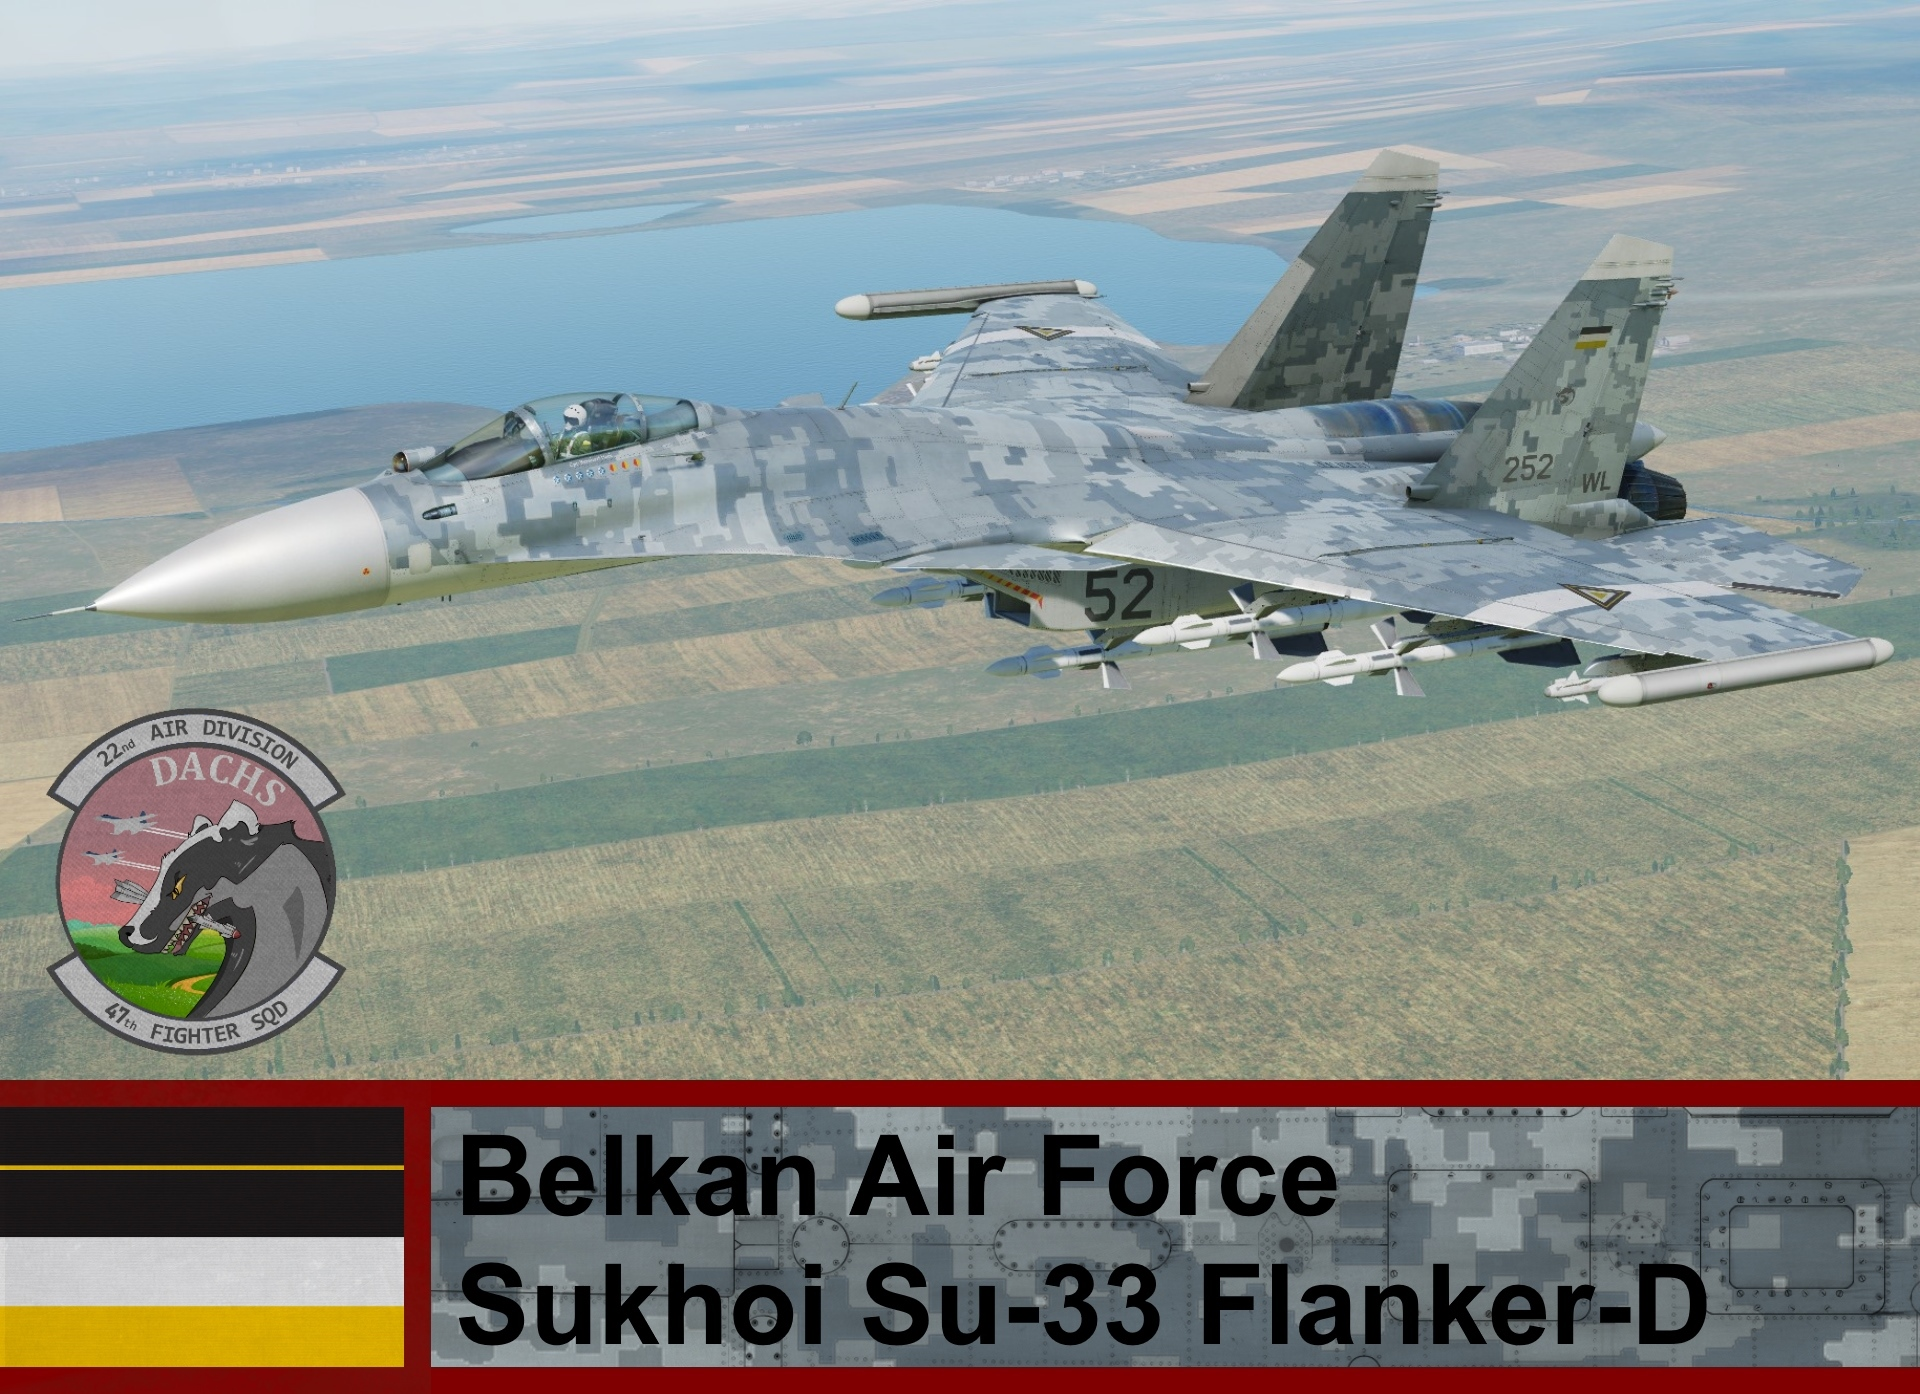 Belkan Air Force Su-33 Flanker-D - Ace Combat Zero (47th TFS)